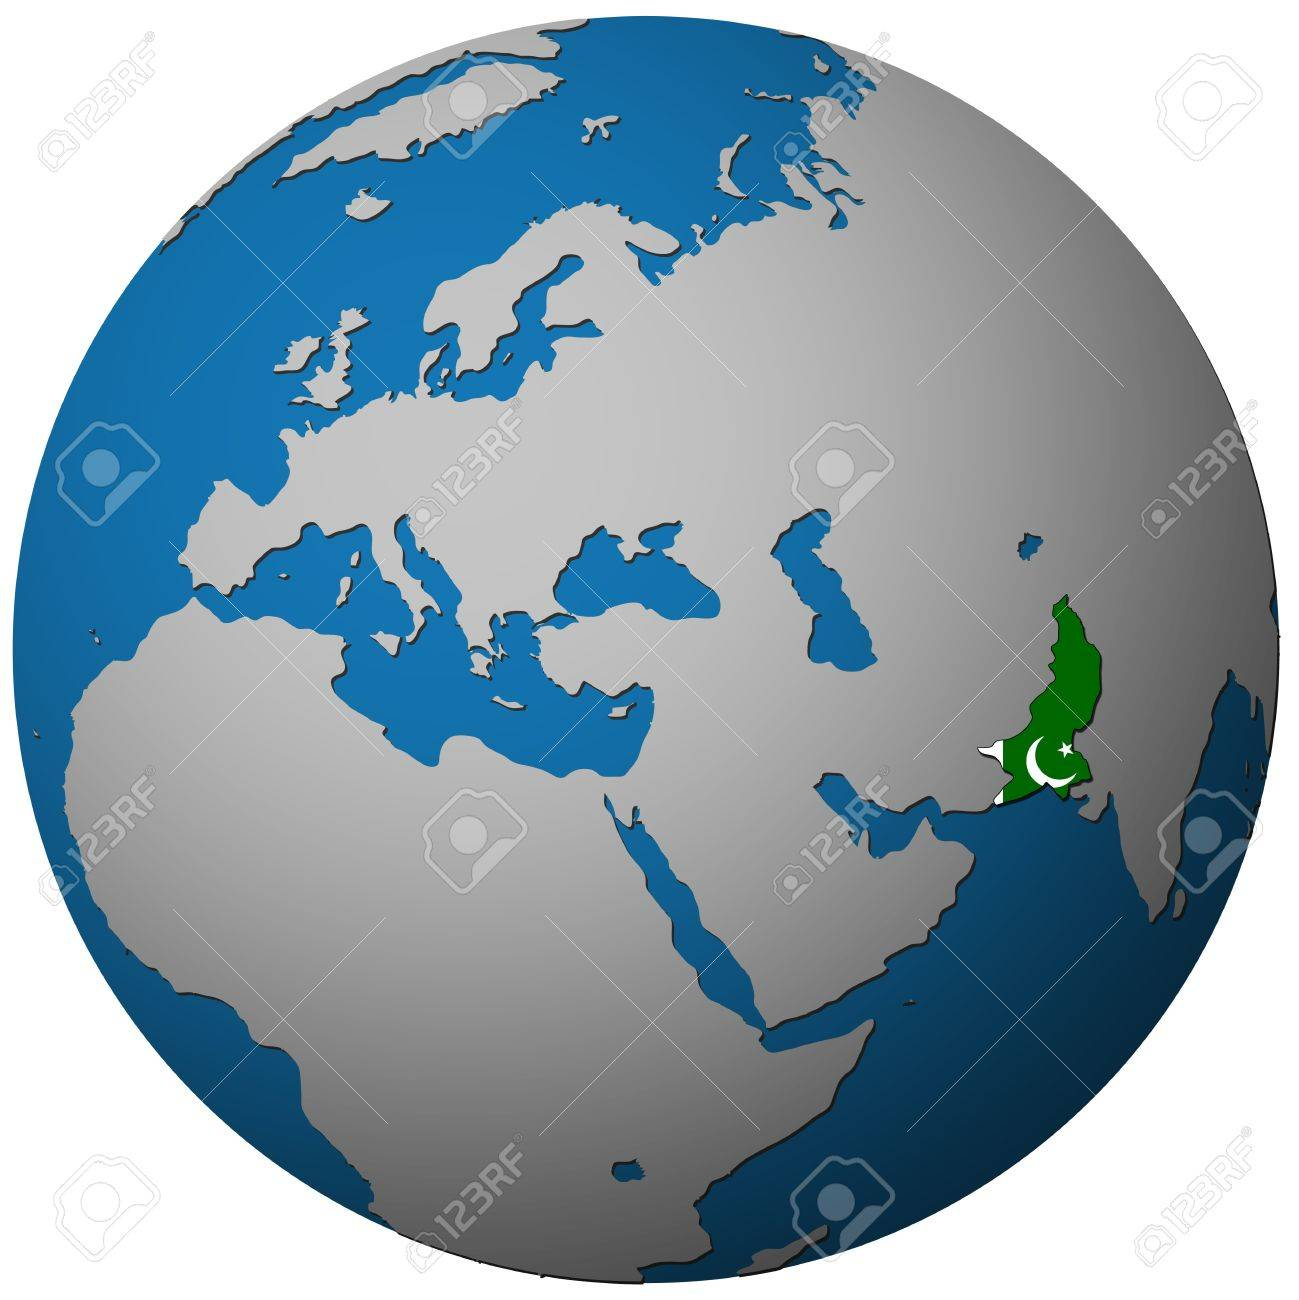 Pakistan Territory With Flag On Map Of Globe Isolated Over White - Map of globe